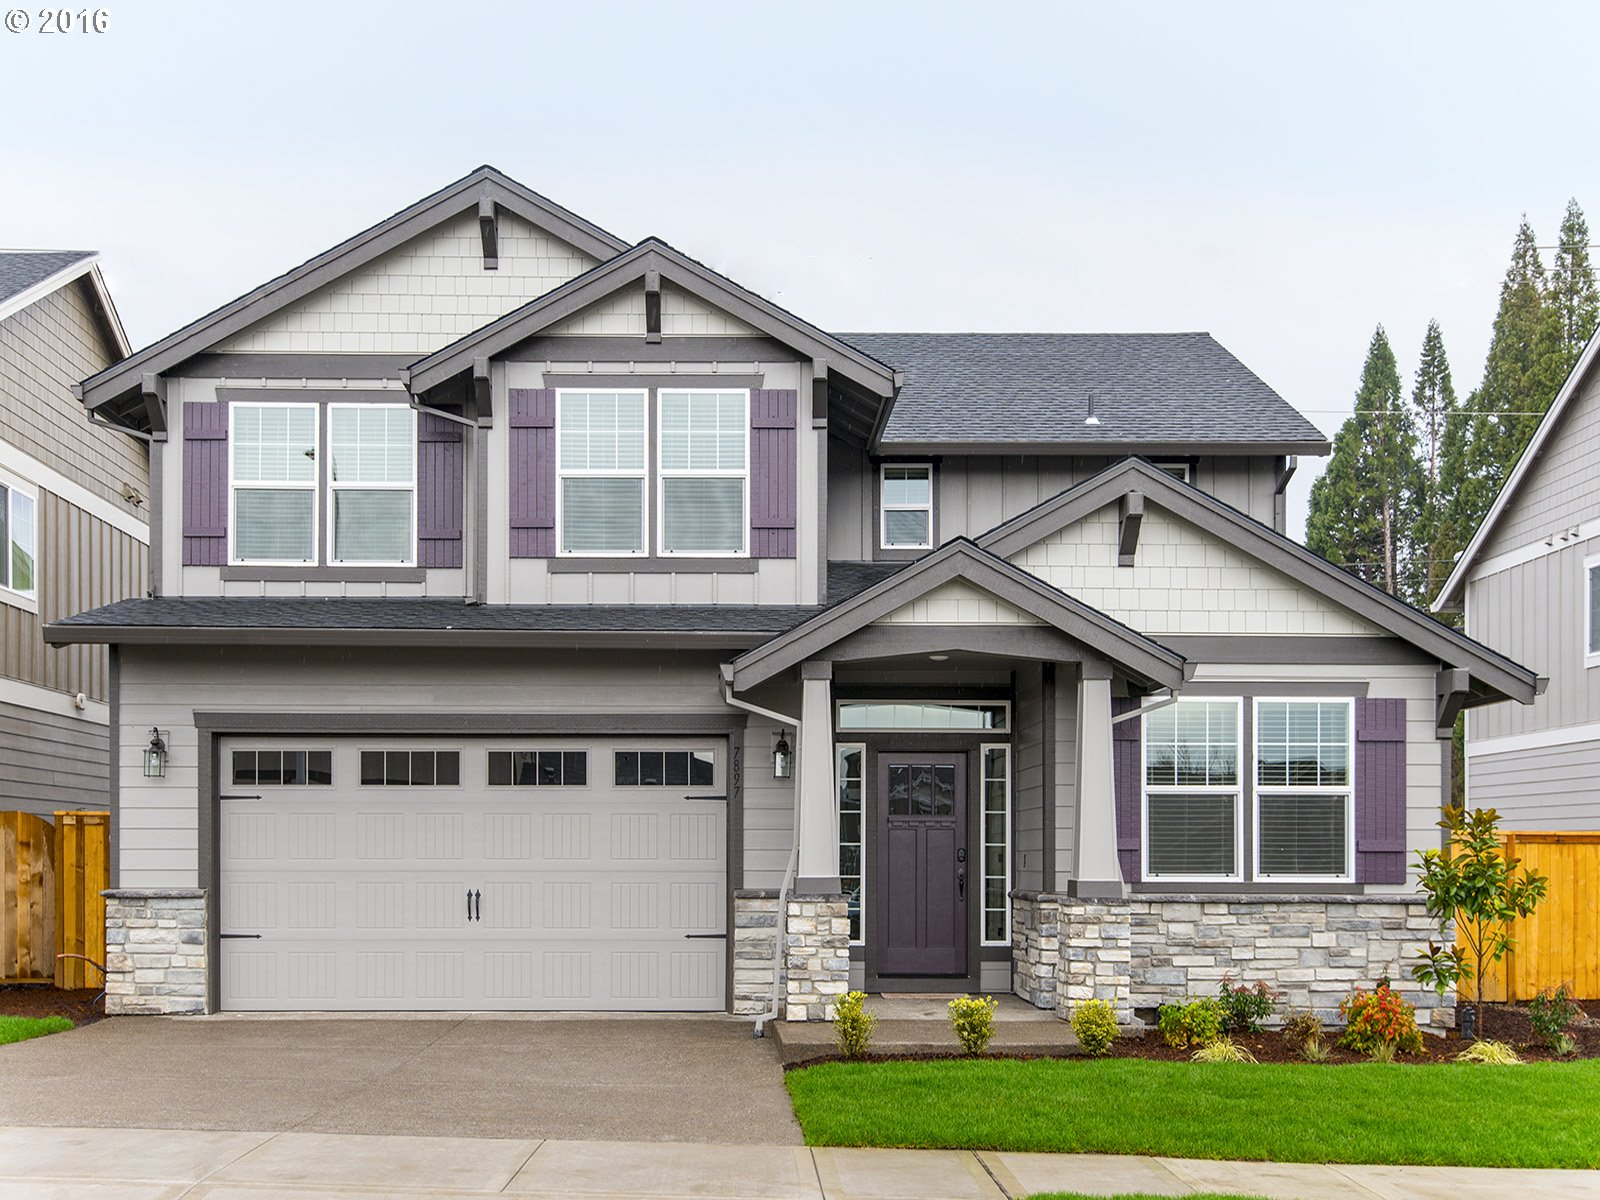 7897 SW FRAMMY WAY lot 4, Hillsboro OR 97123